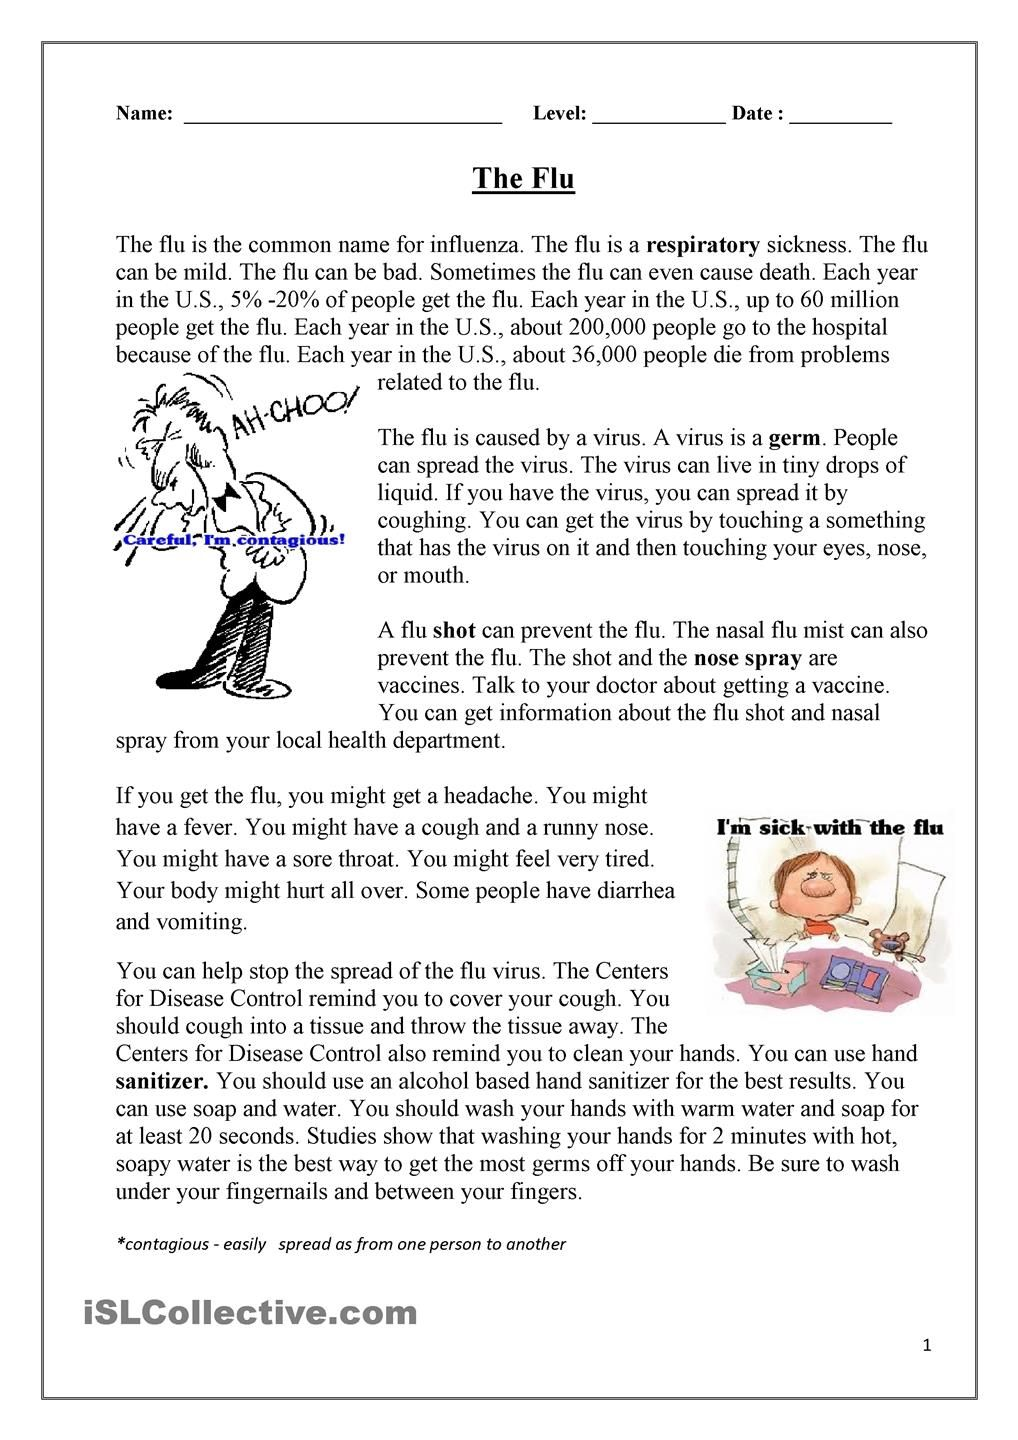 Pin By Tatyana Toulchinsky On Isl Teaching Reading Comprehension Reading Comprehension Worksheets Reading Comprehension Activities [ 1440 x 1018 Pixel ]